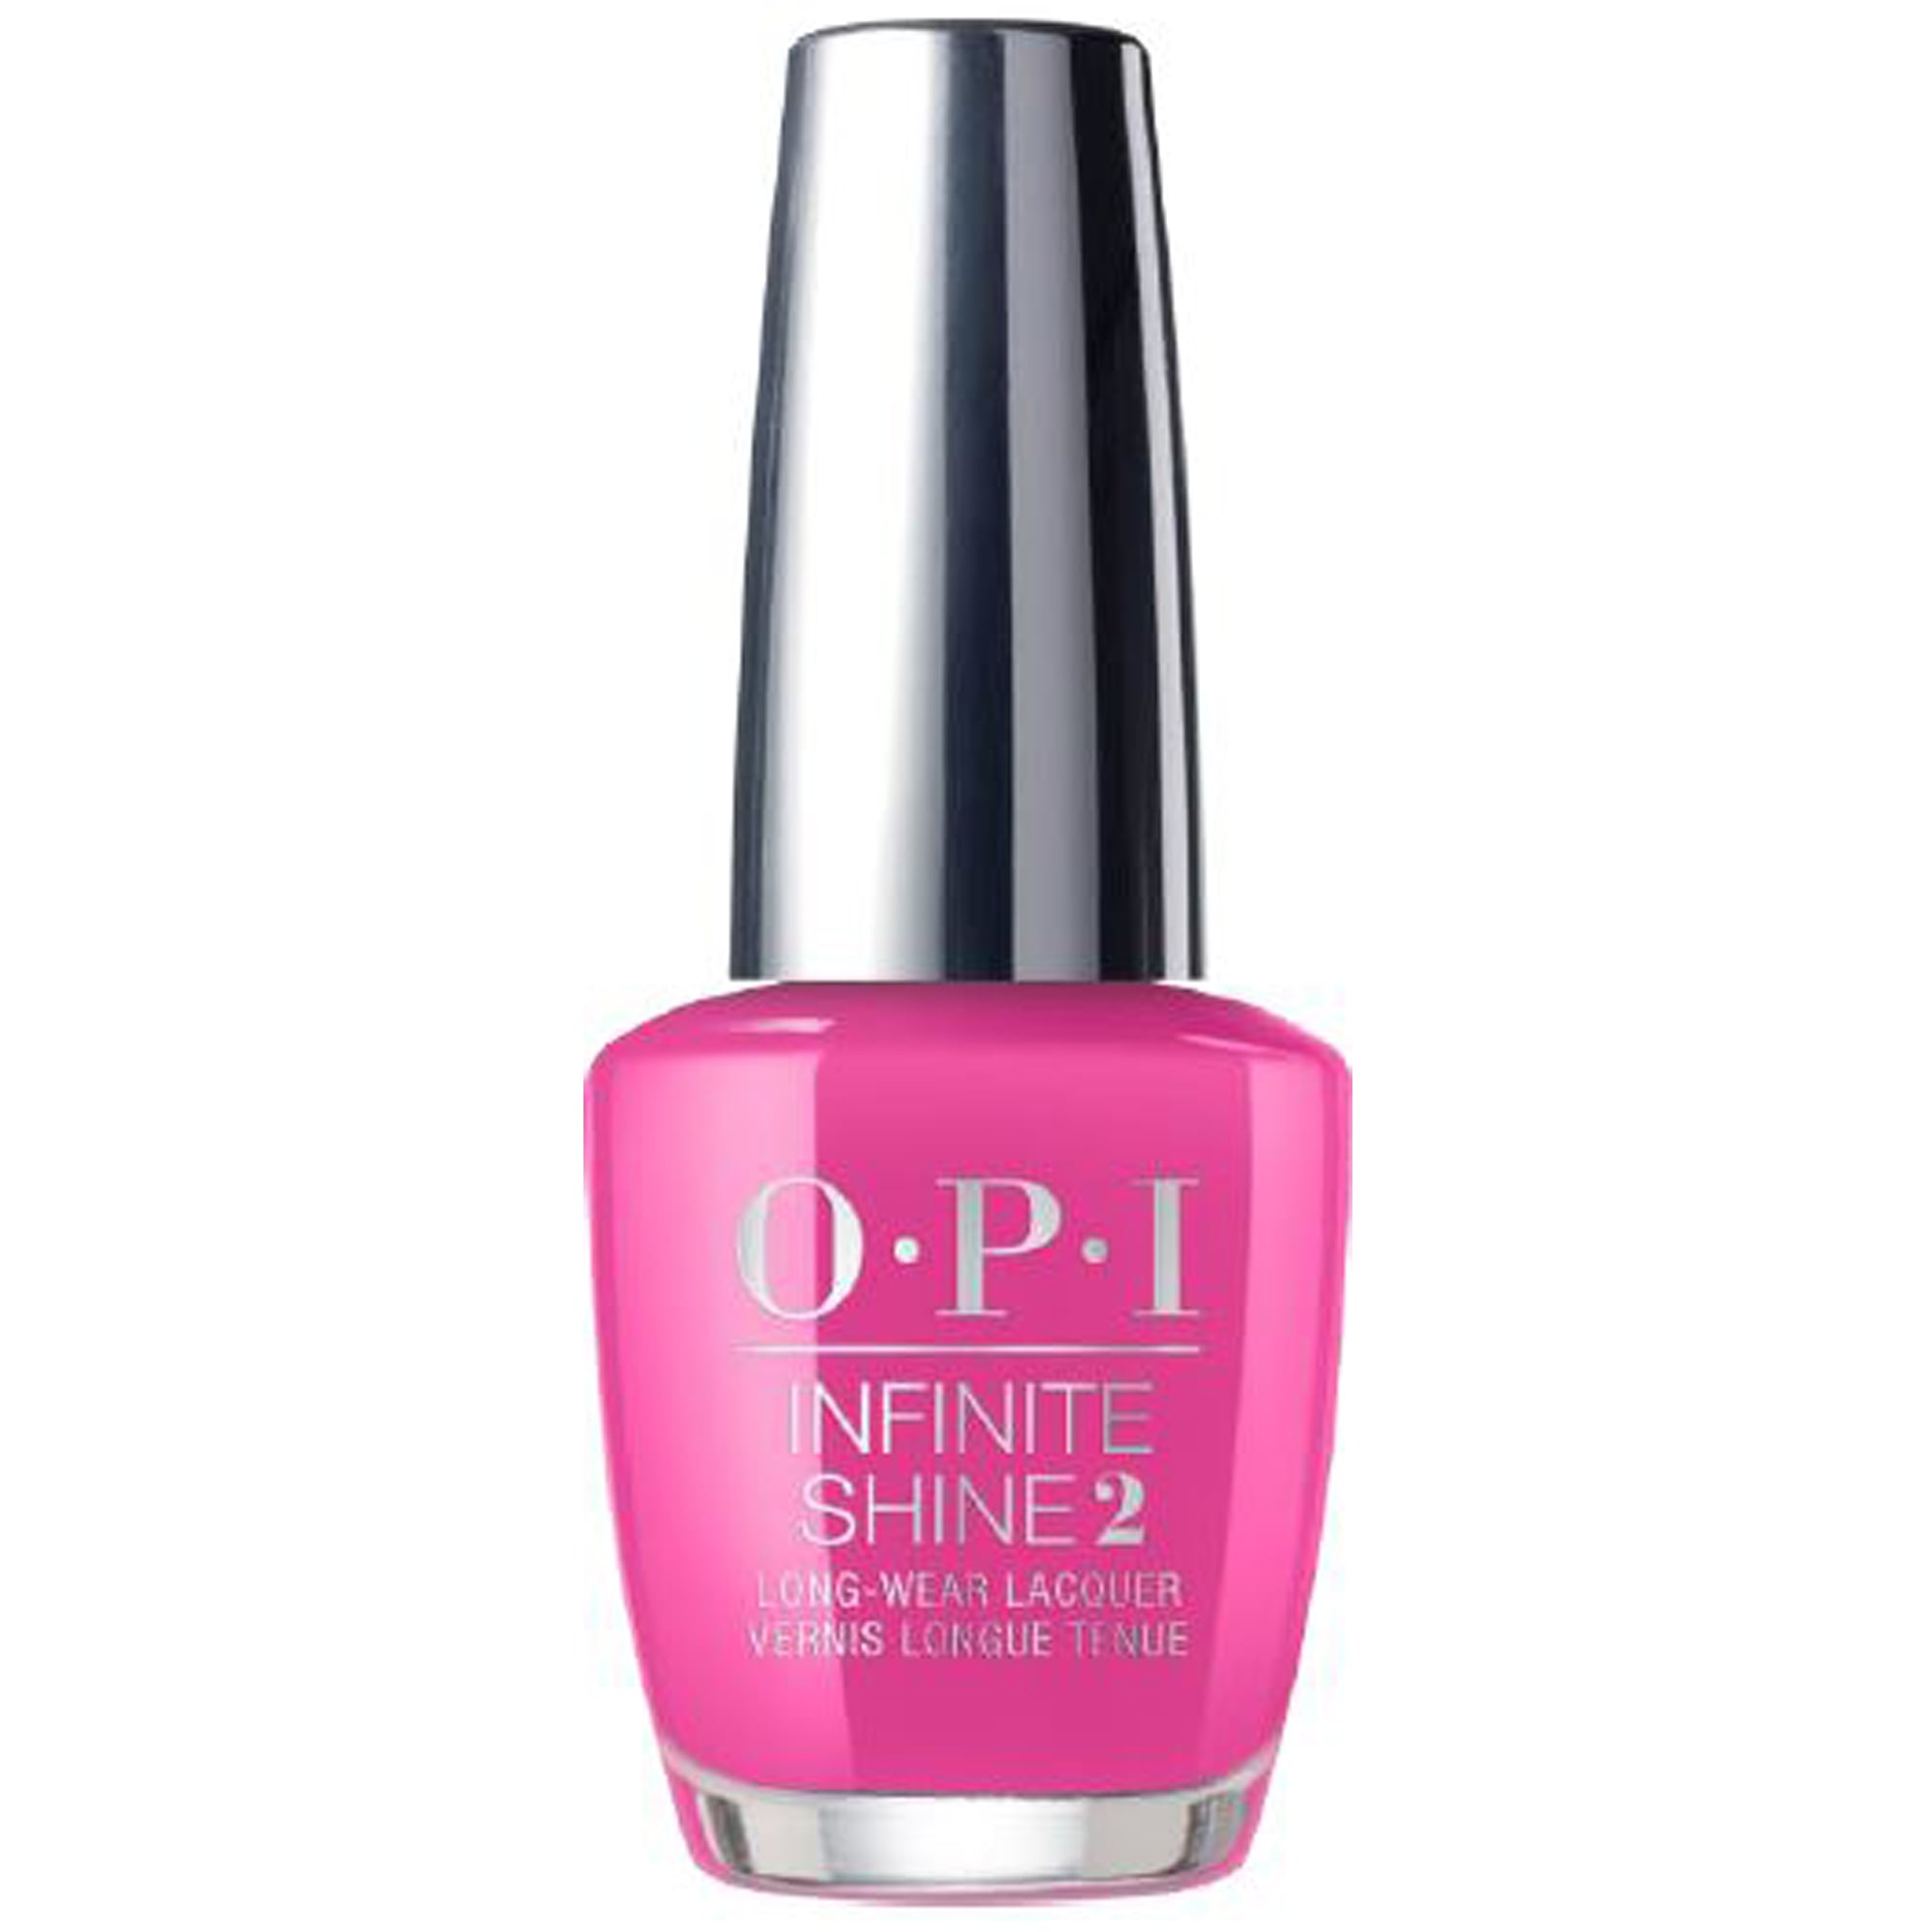 OPI No Turning Back From Pink Street - Lisbon 2018 (ISL L19) 15ml